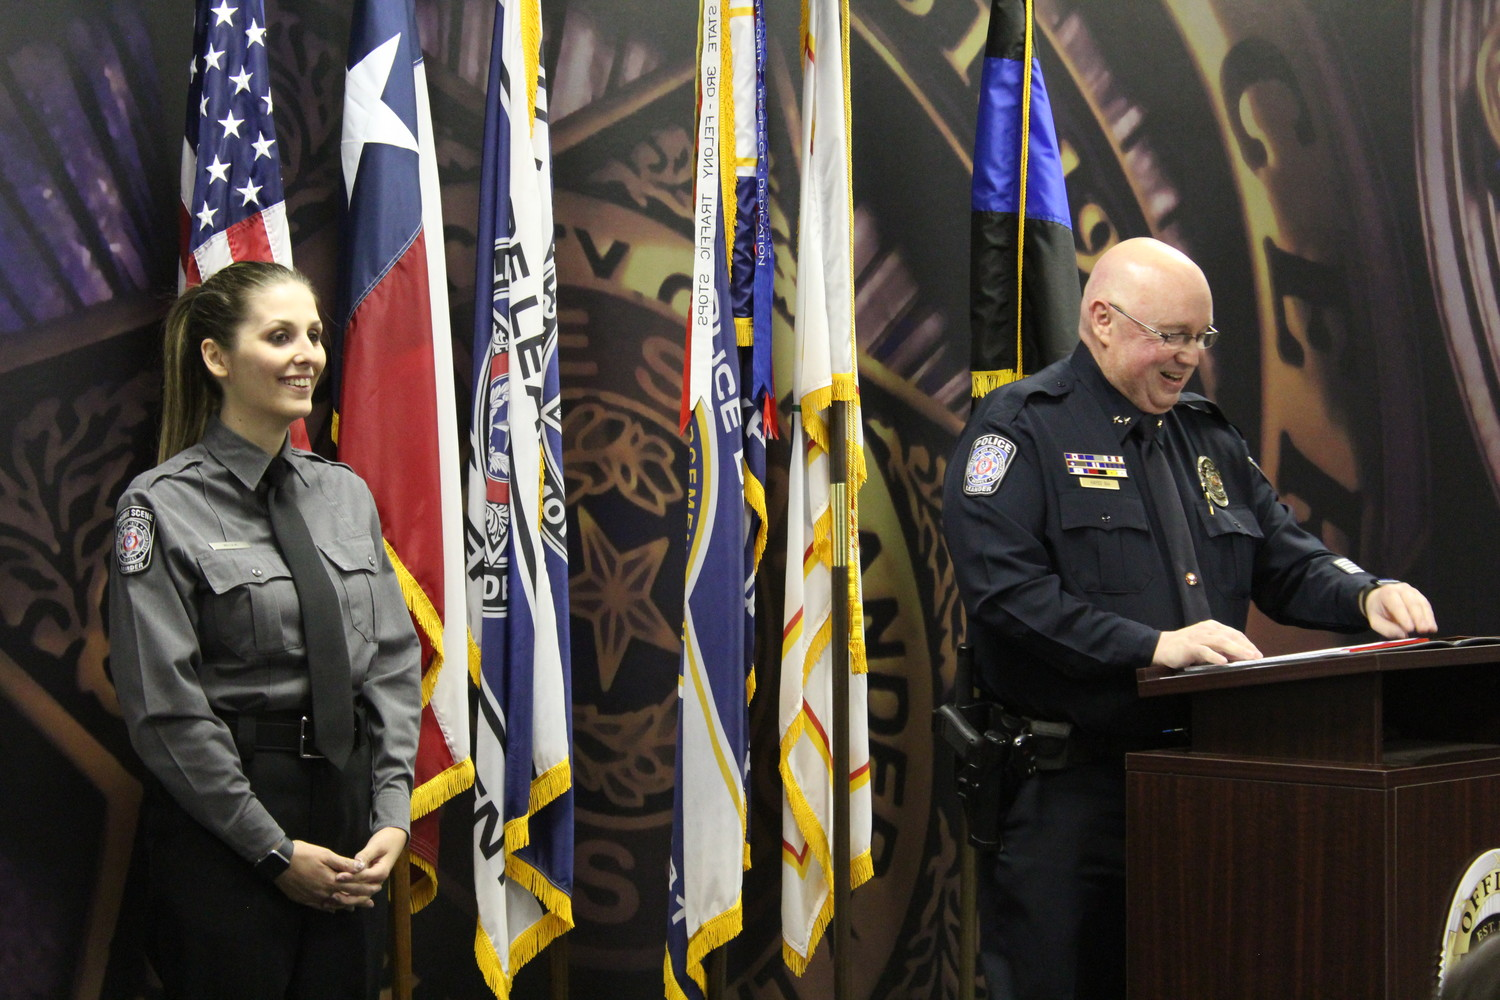 Leander Assistant Chief of Police Jeff Hayes introduces crime scene specialist Haley Williams during a badge-pinning ceremony at the Leander Police Department on July 12.